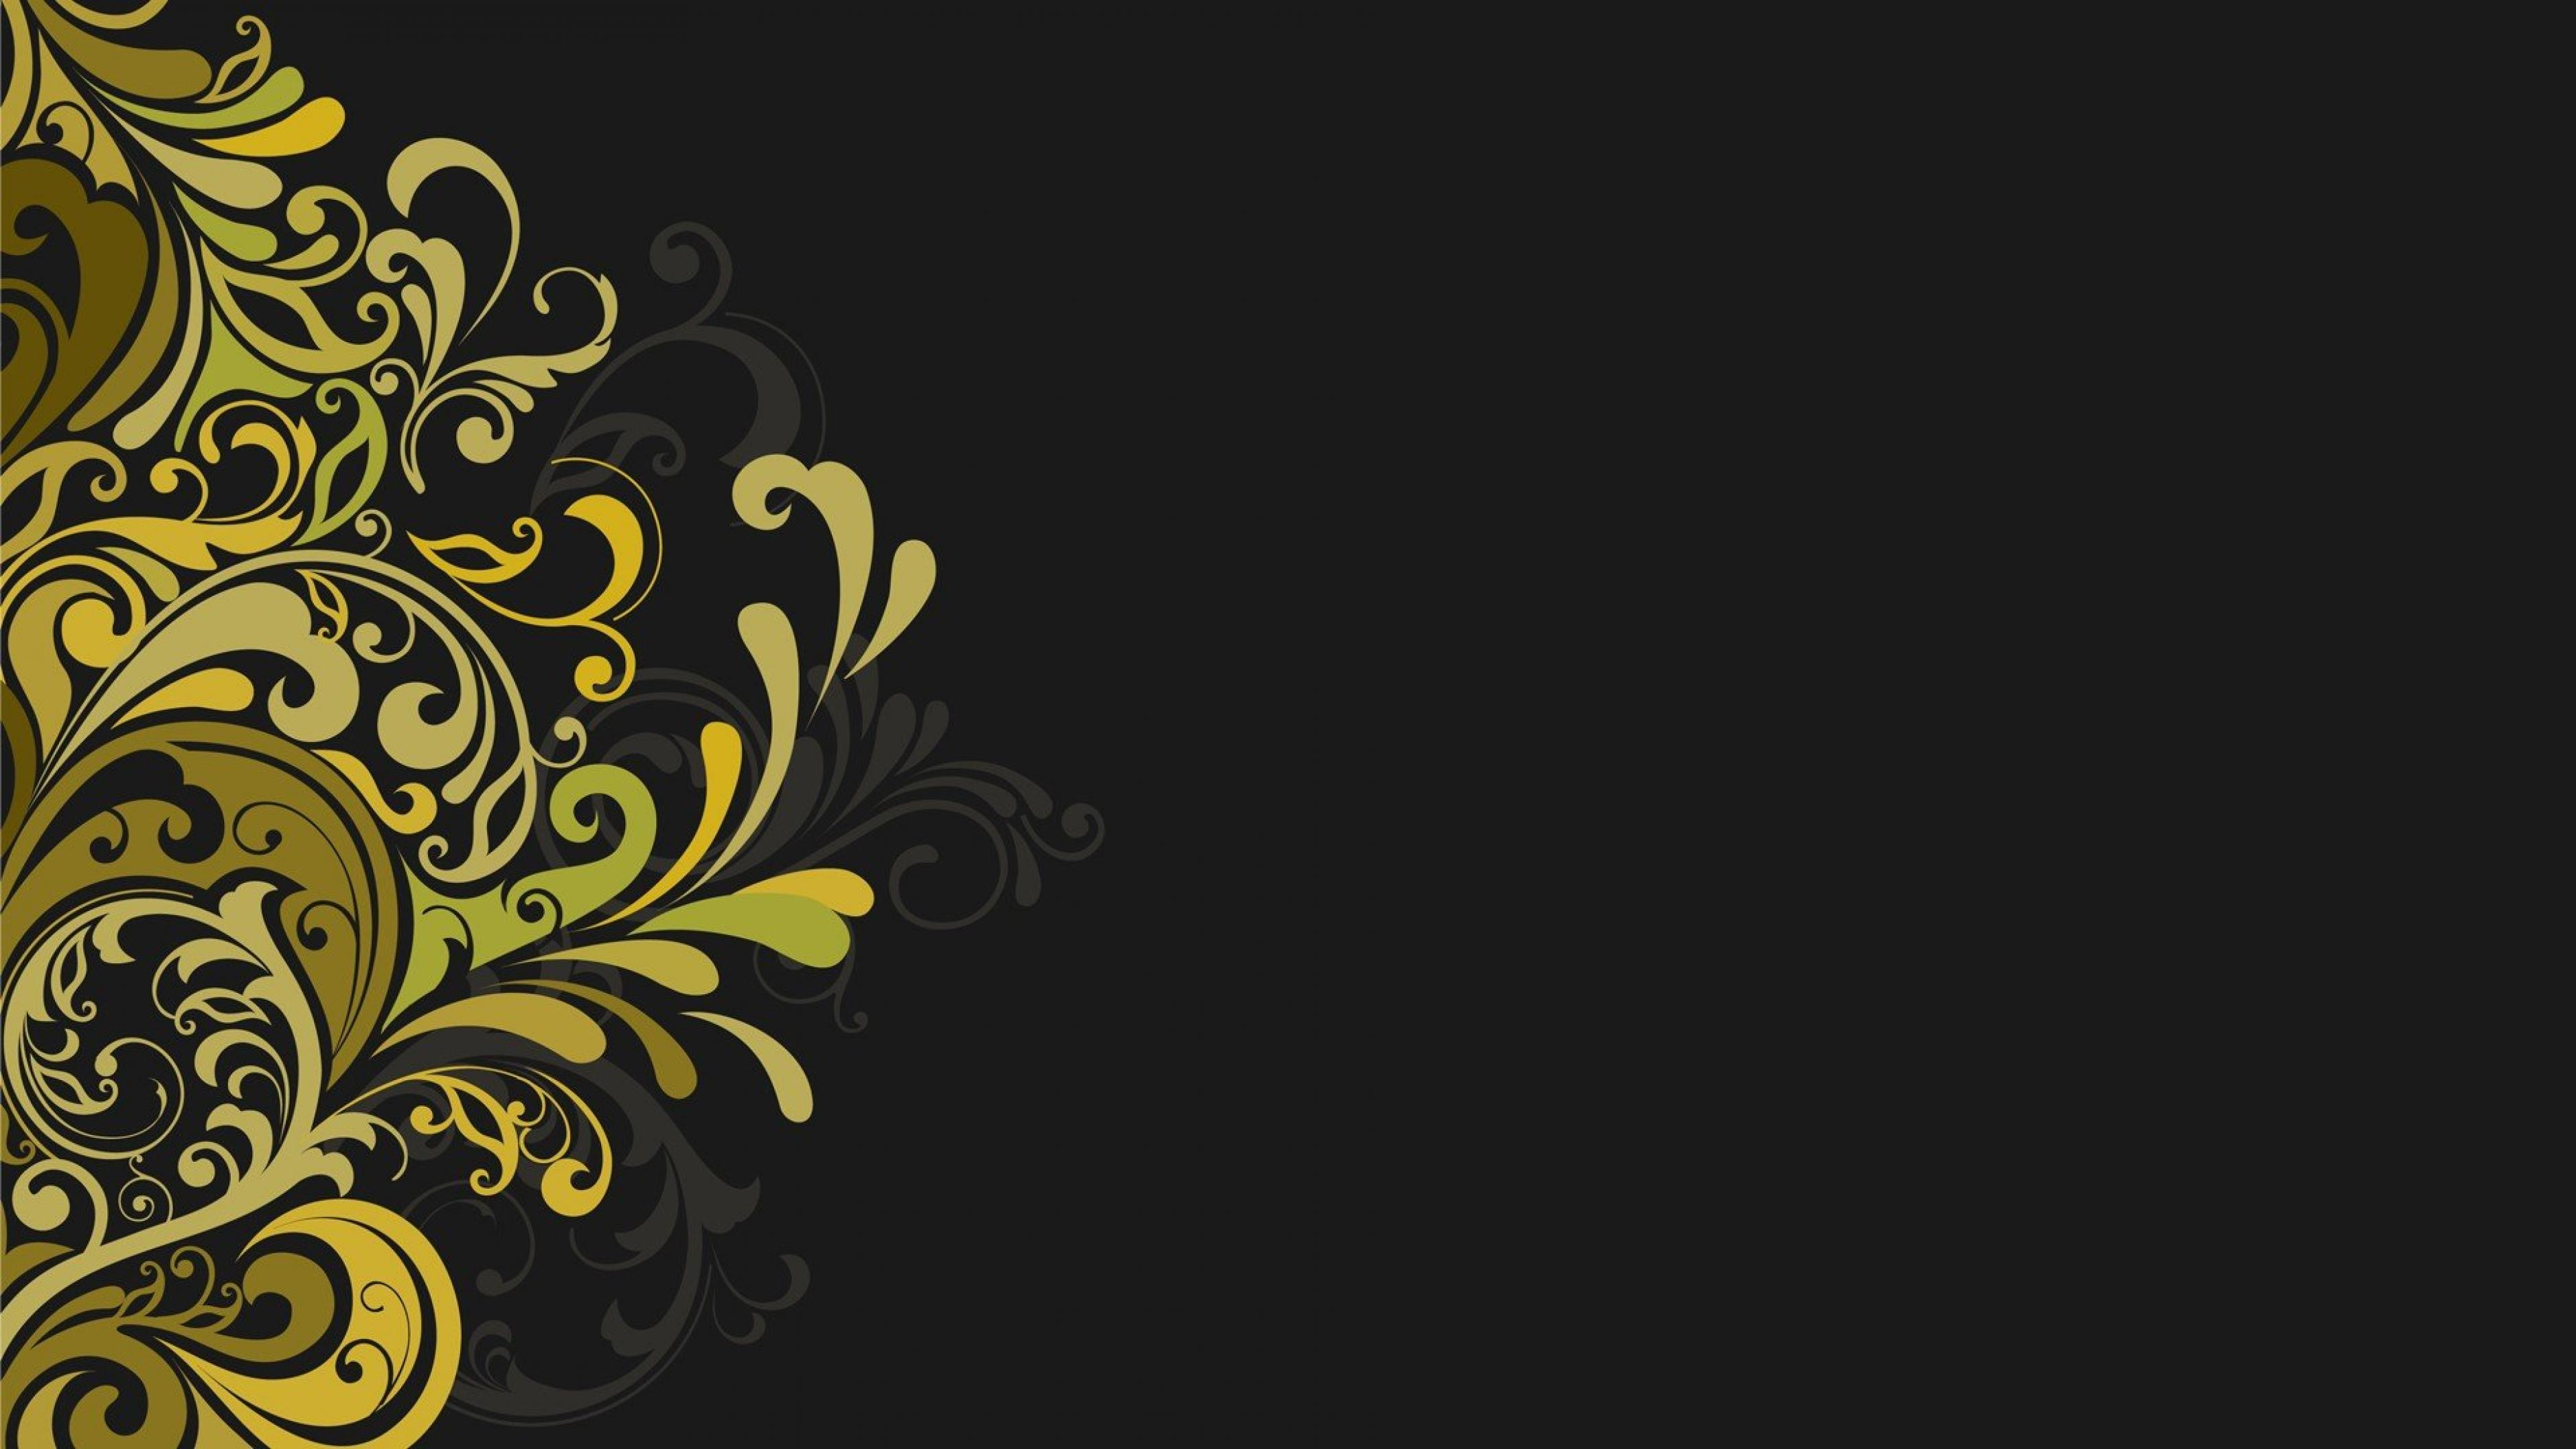 Graphics floral clipart library vectors floral graphics grey background HD wallpaper #230472 clipart library